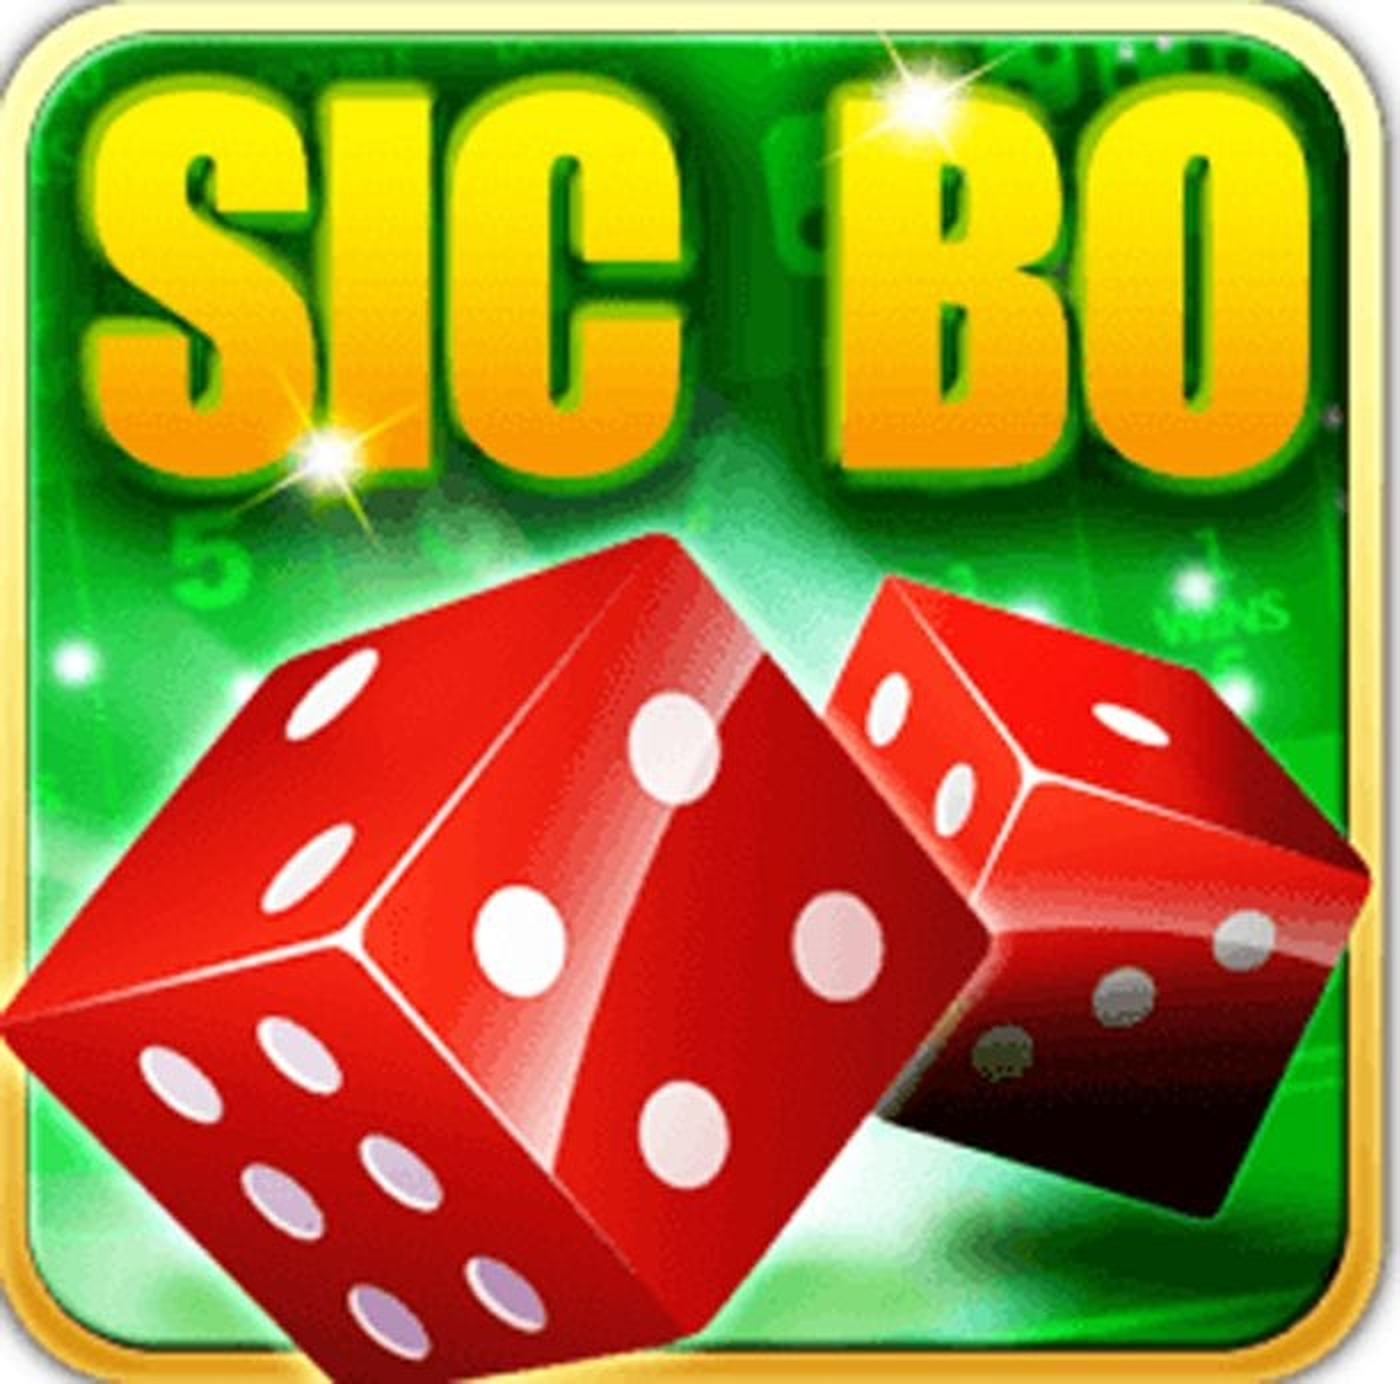 Sicbo Australia Online Slot Demo Game by Inbet Games